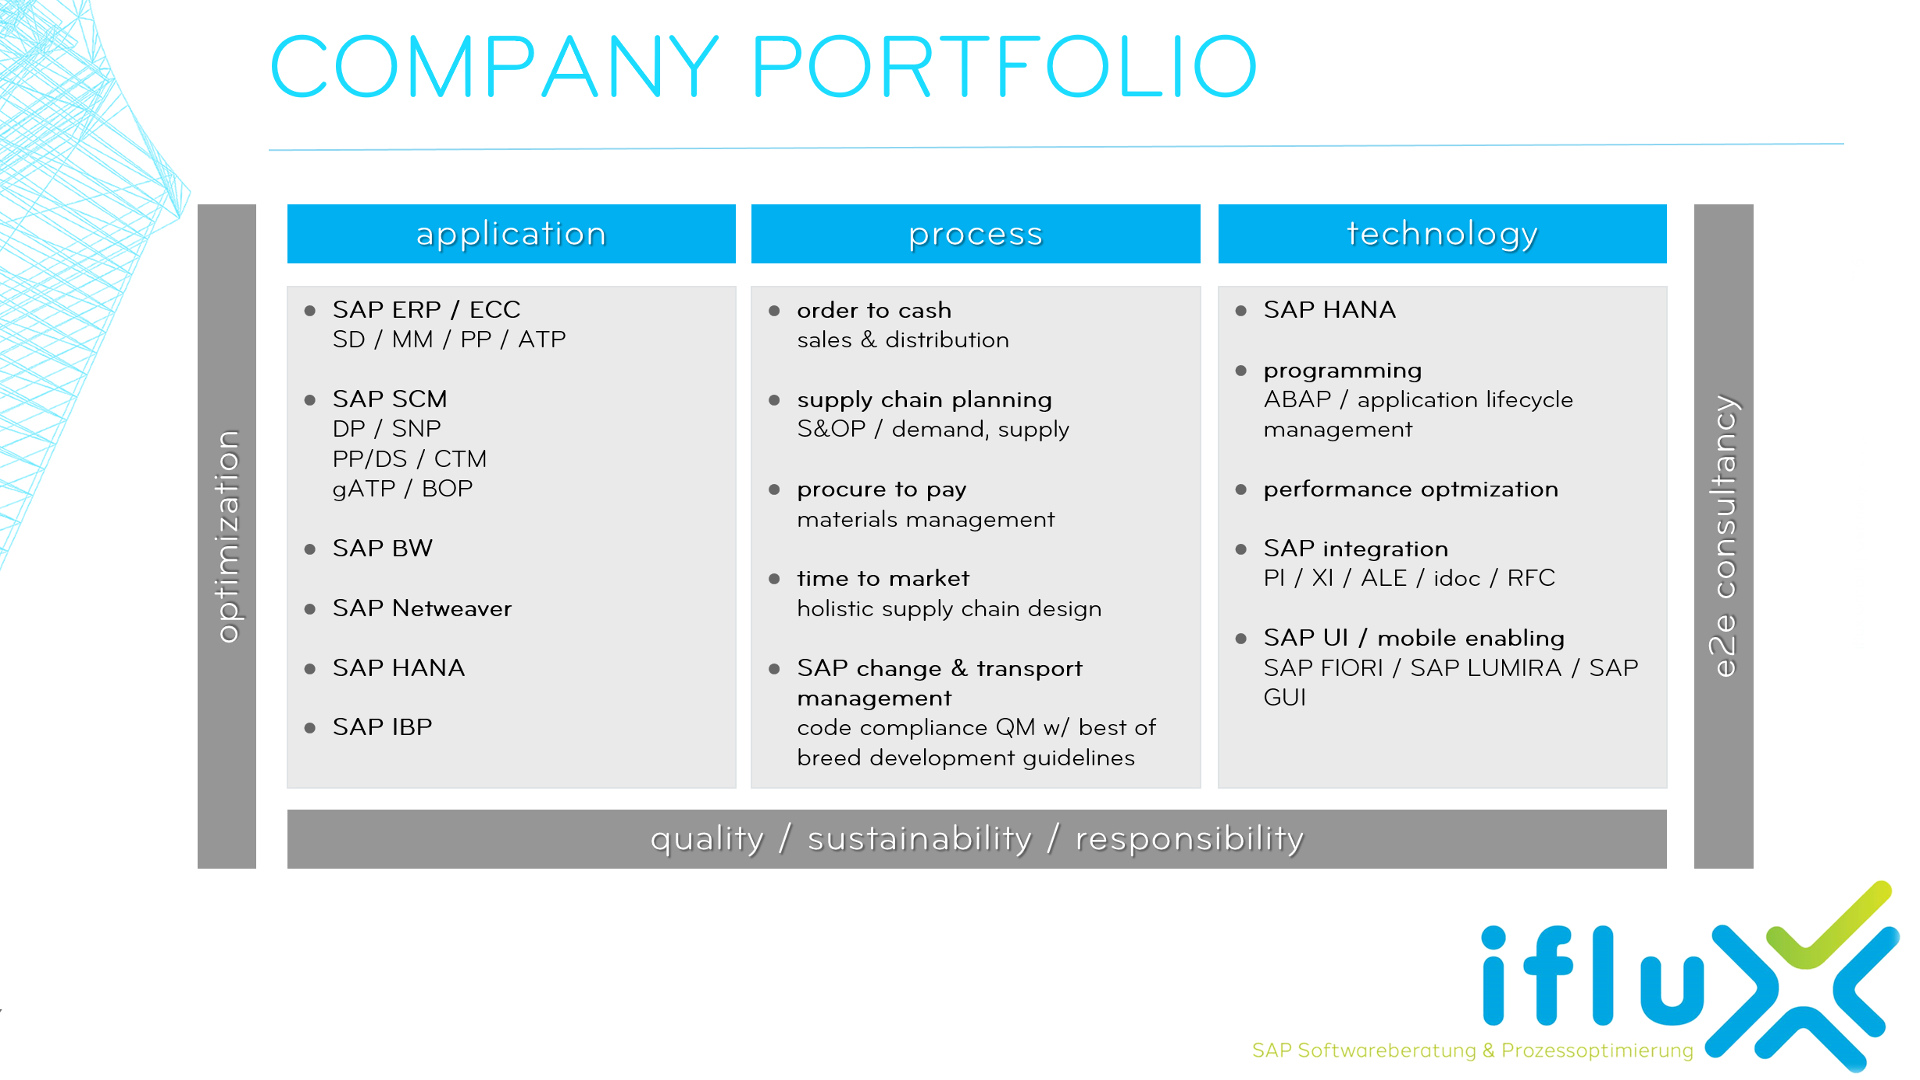 Company portfolio at a glance